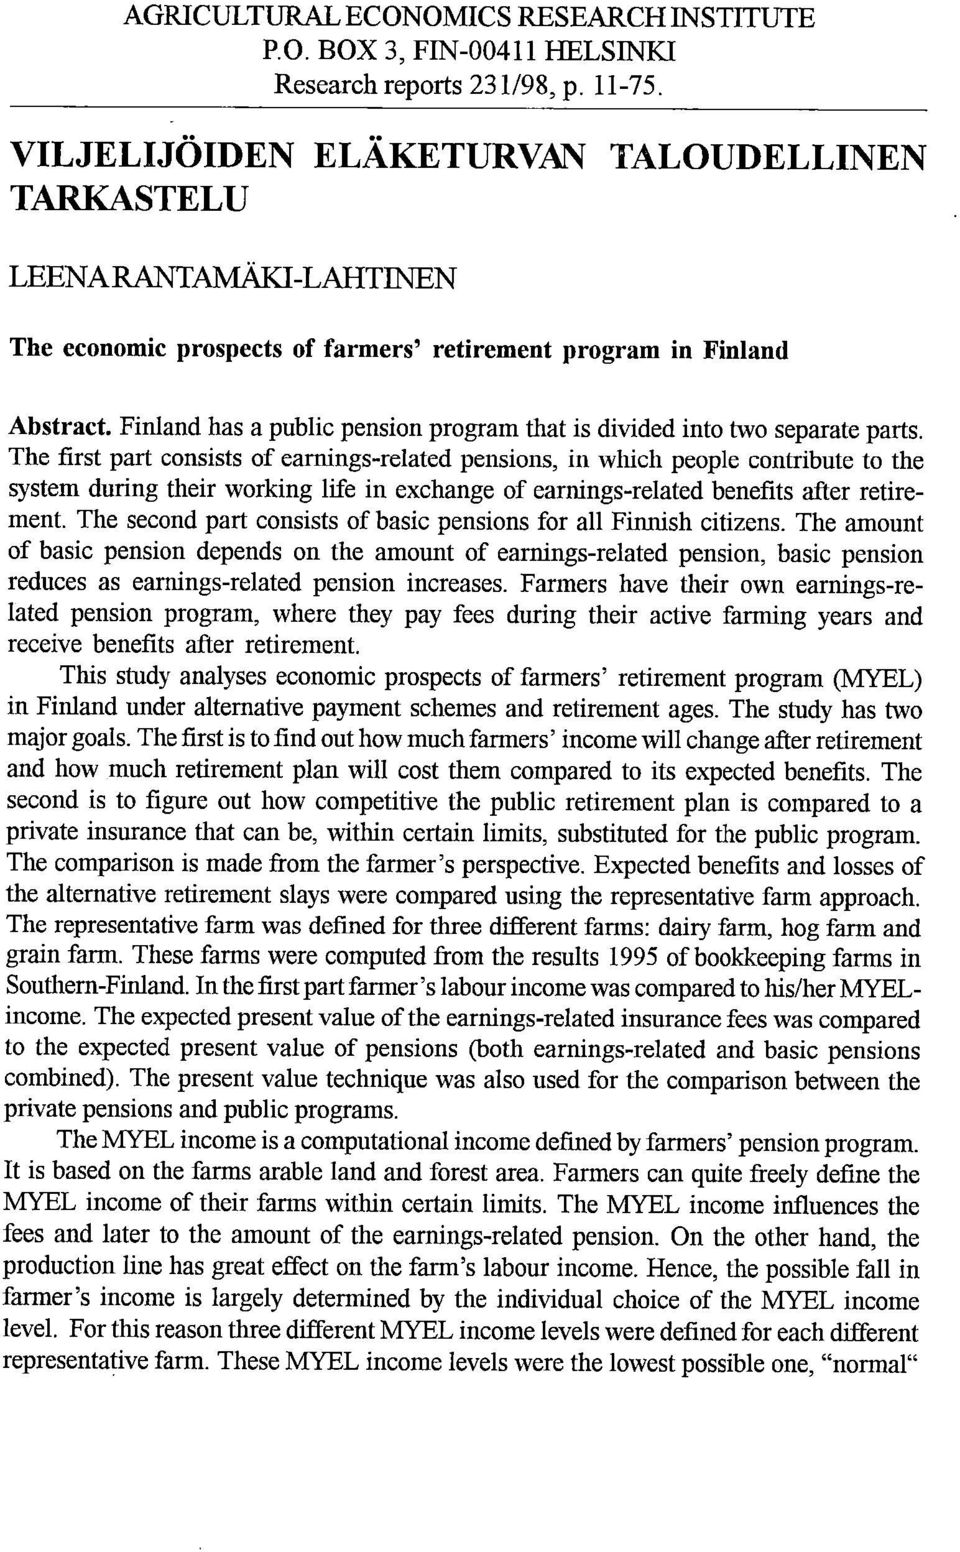 Finland has a public pension program that is divided into two separate parts.